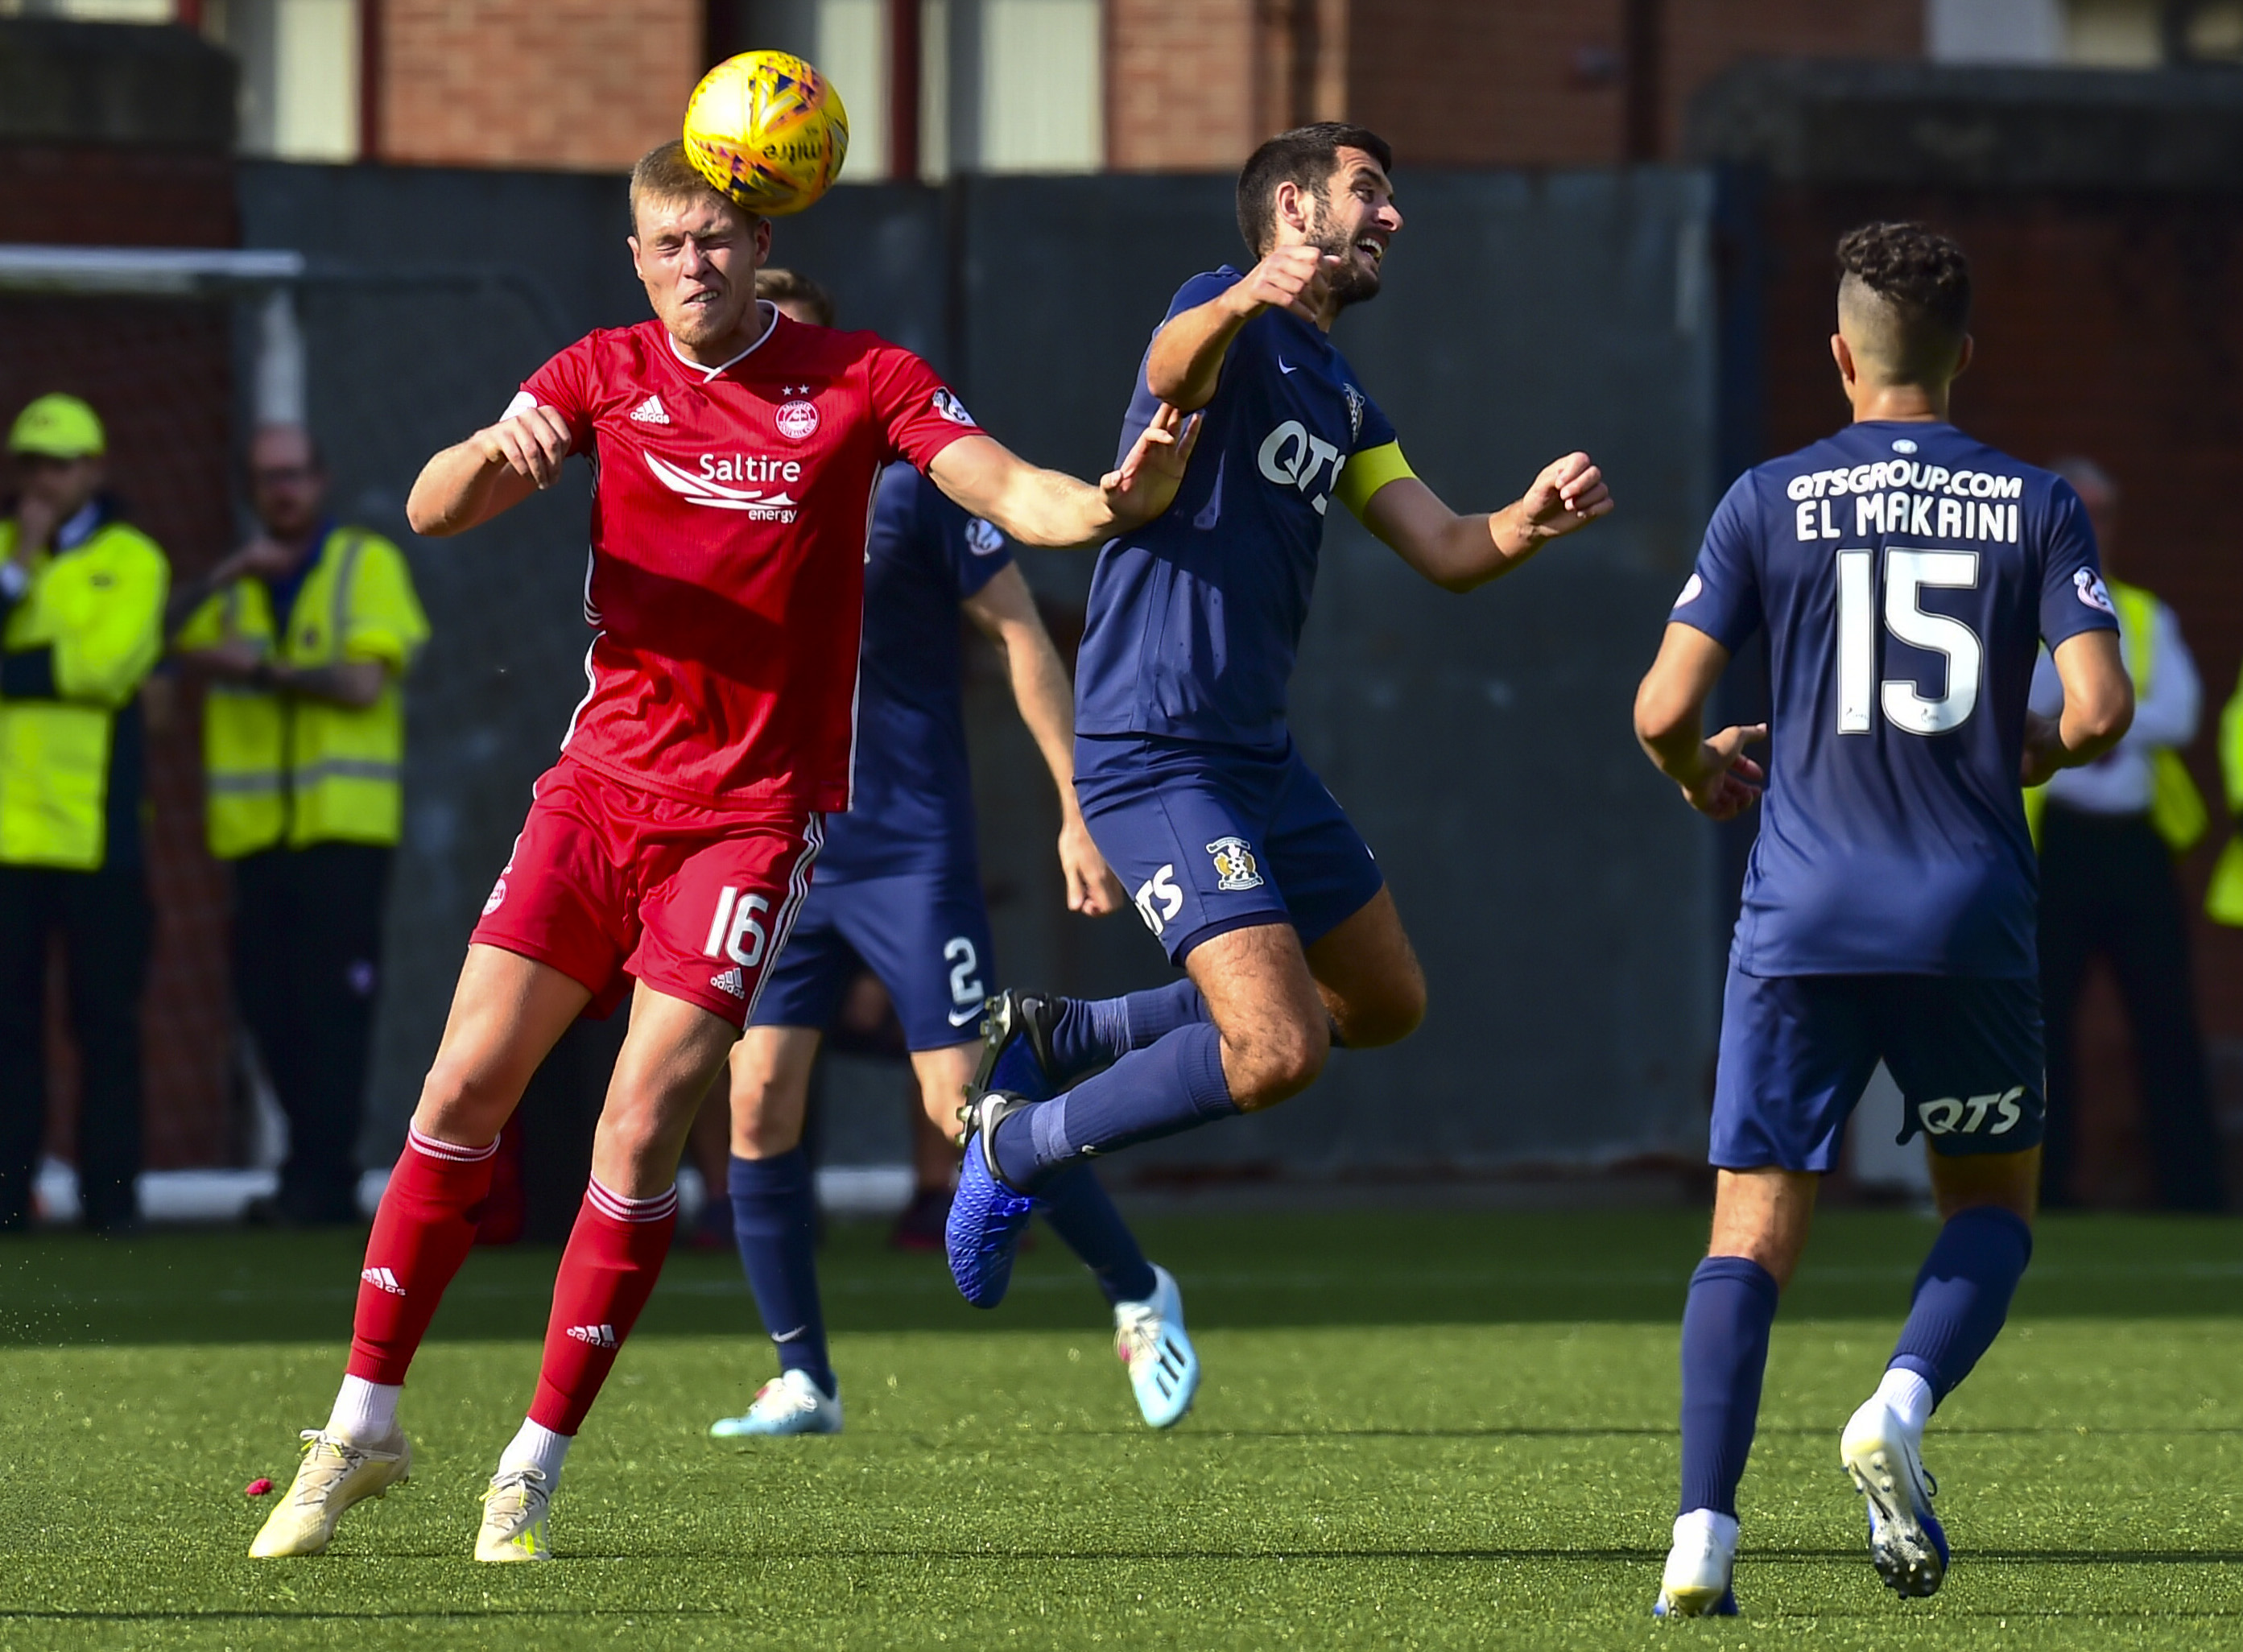 Aberdeen's Sam Cosgrove and Mohammed El Makrini in action.